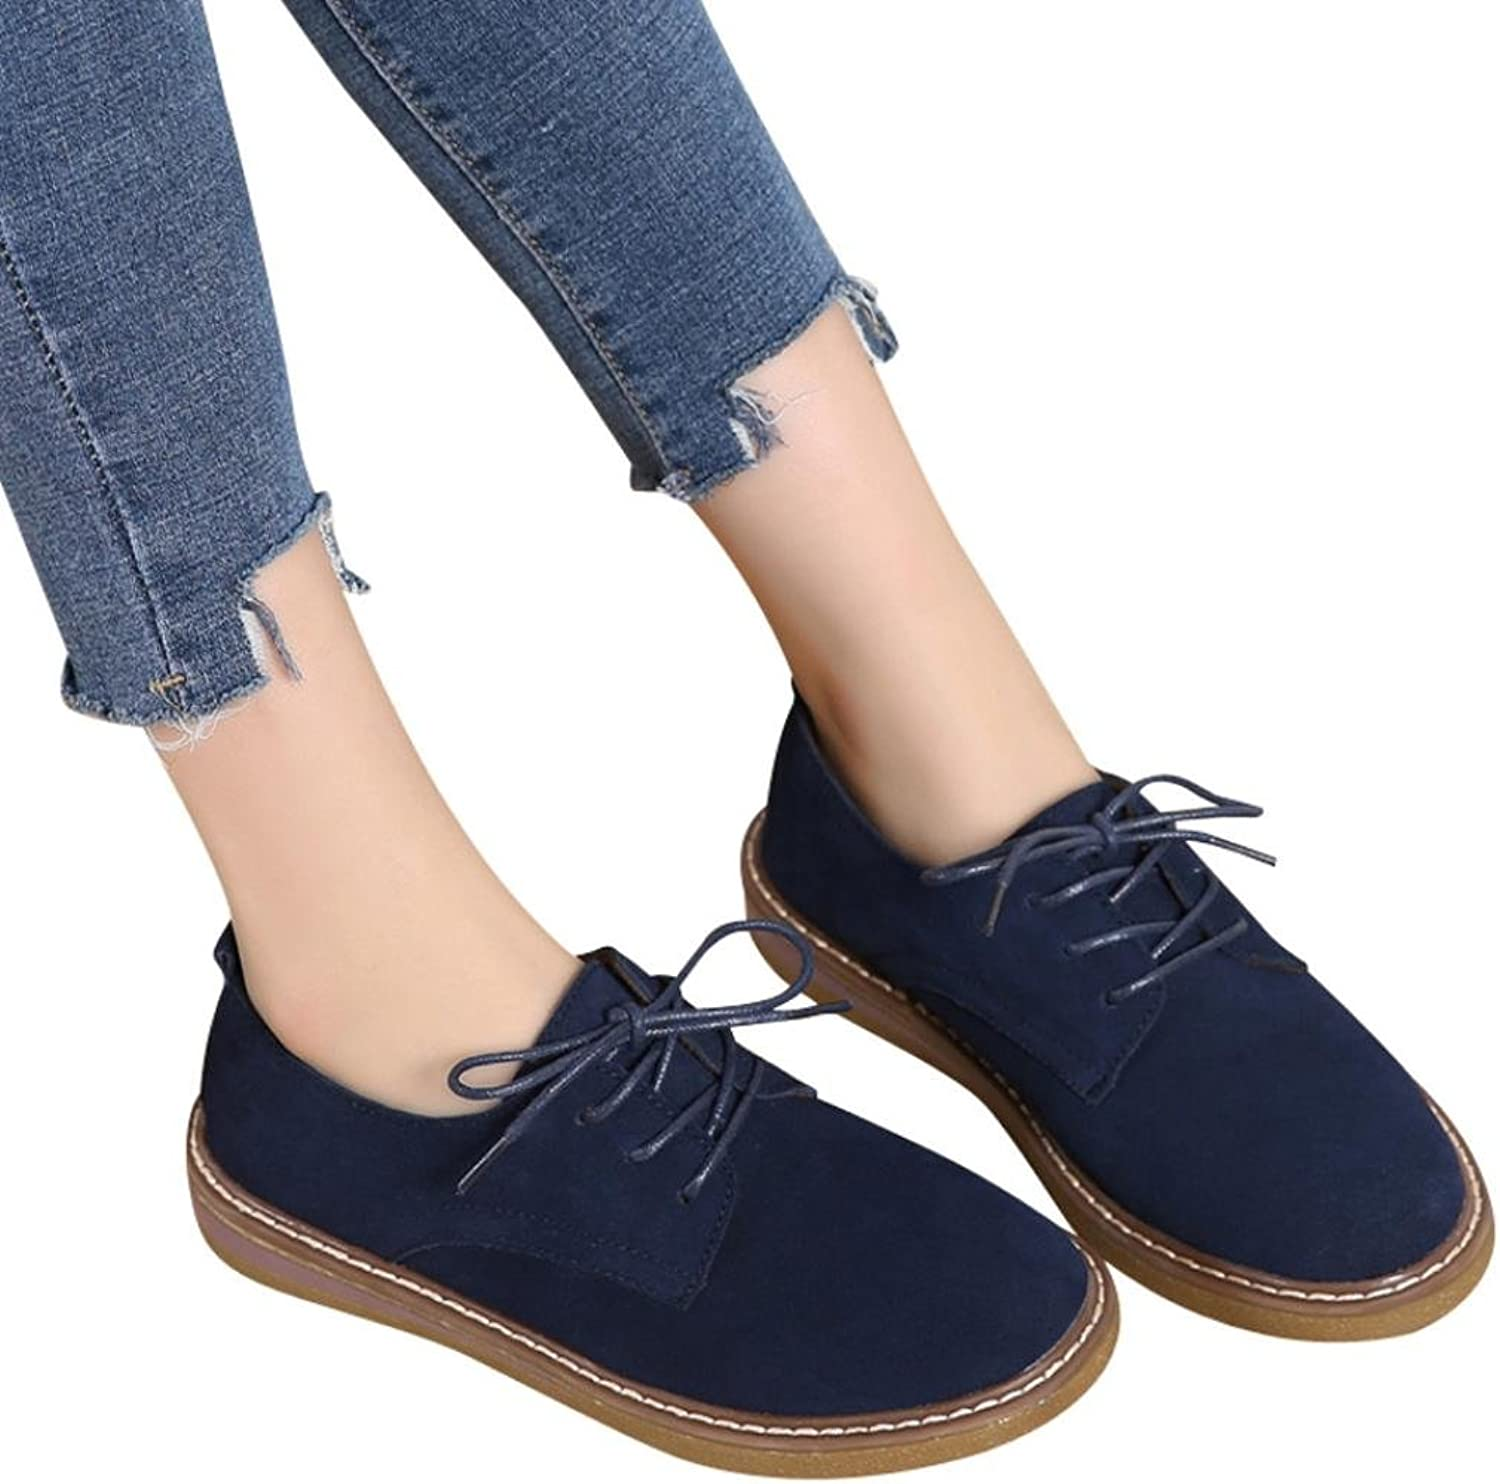 Fheaven (TM) Women Sneakers Loafers shoes Suede Leather Lace Up Boat shoes Round Toe Moccasins Flats Black